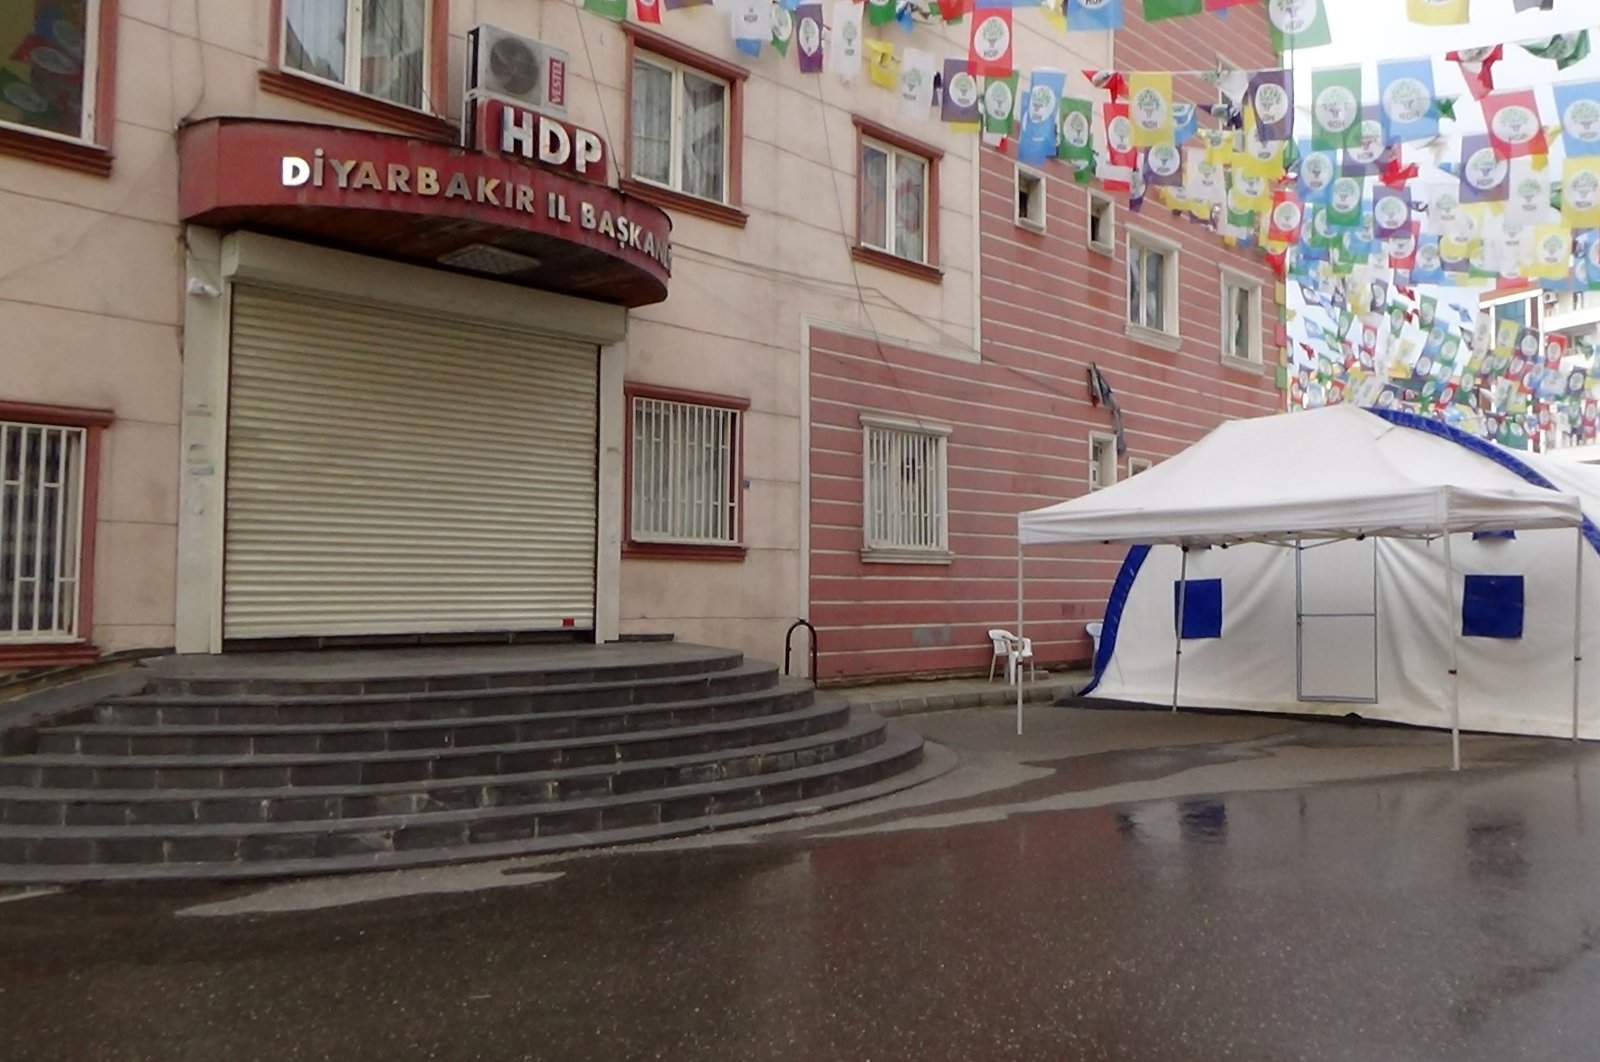 Families protesting the PKK terrorist organization continued their sit-in at a hotel during the curfew to curb the spread of the coronavirus pandemic, Diyarbakır, Turkey, April 11, 2020. (İHA Photo)